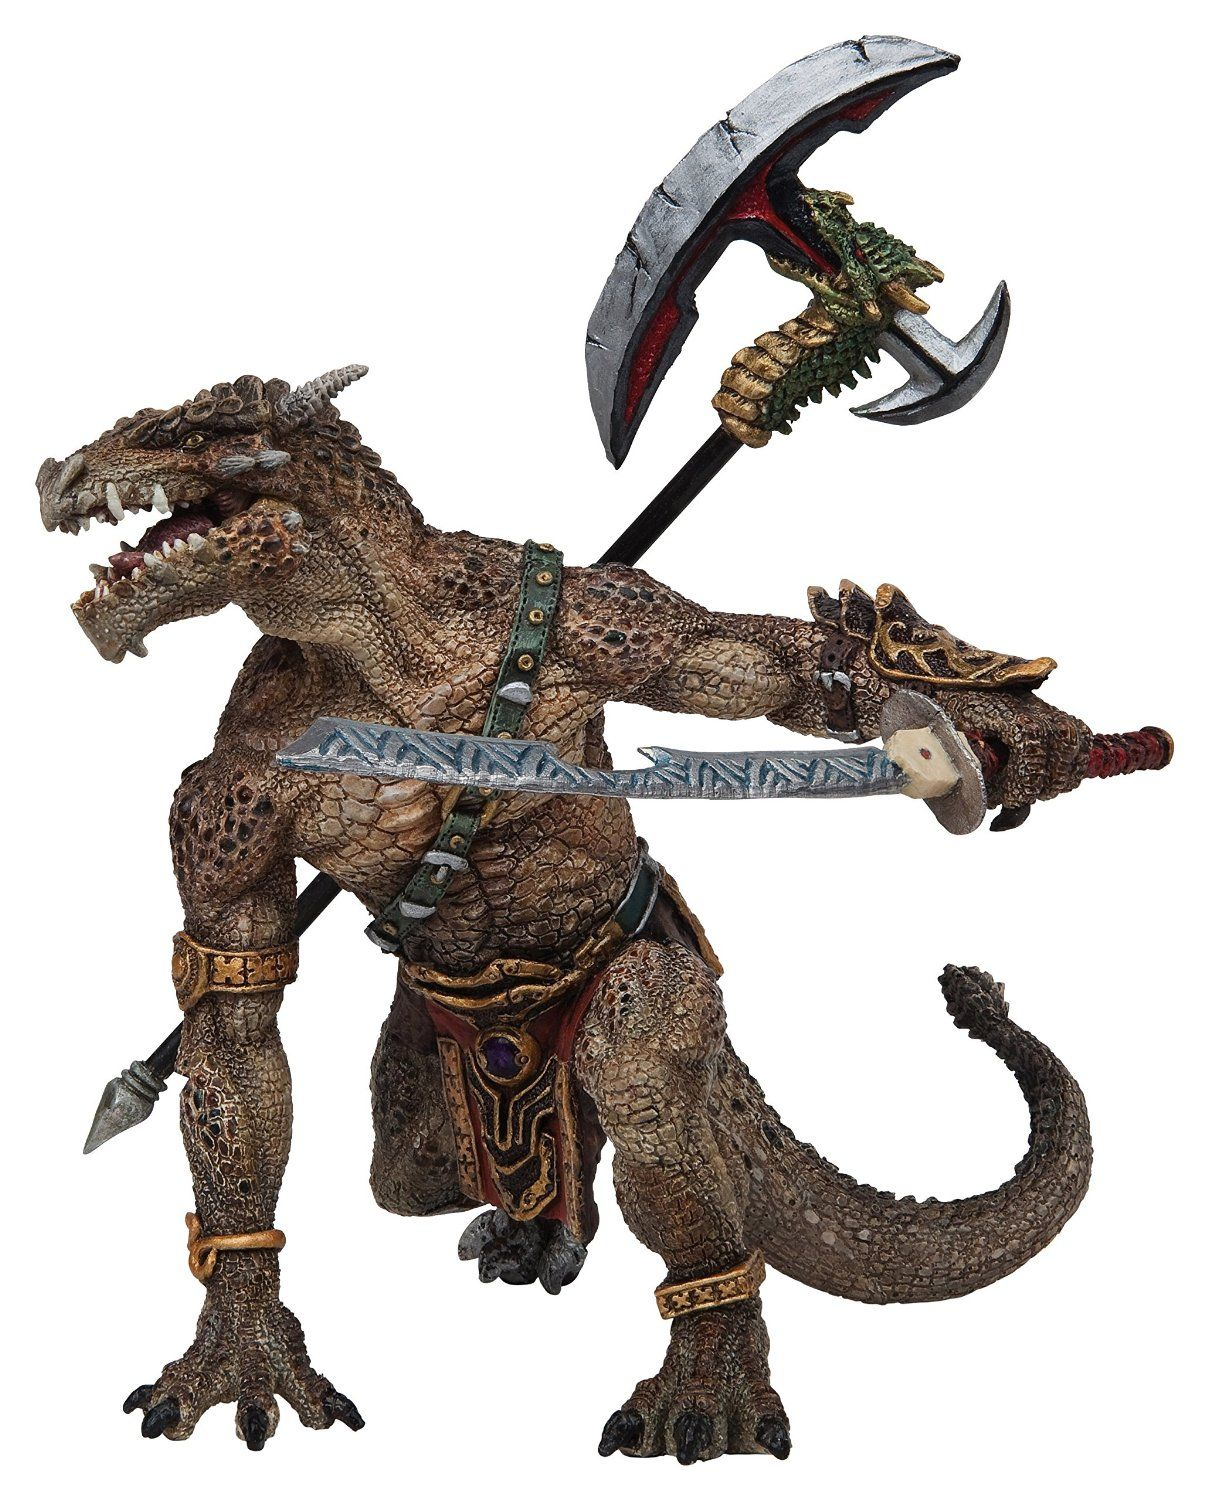 Amazon.com: Papo Dragon Mutant: Toys & Games